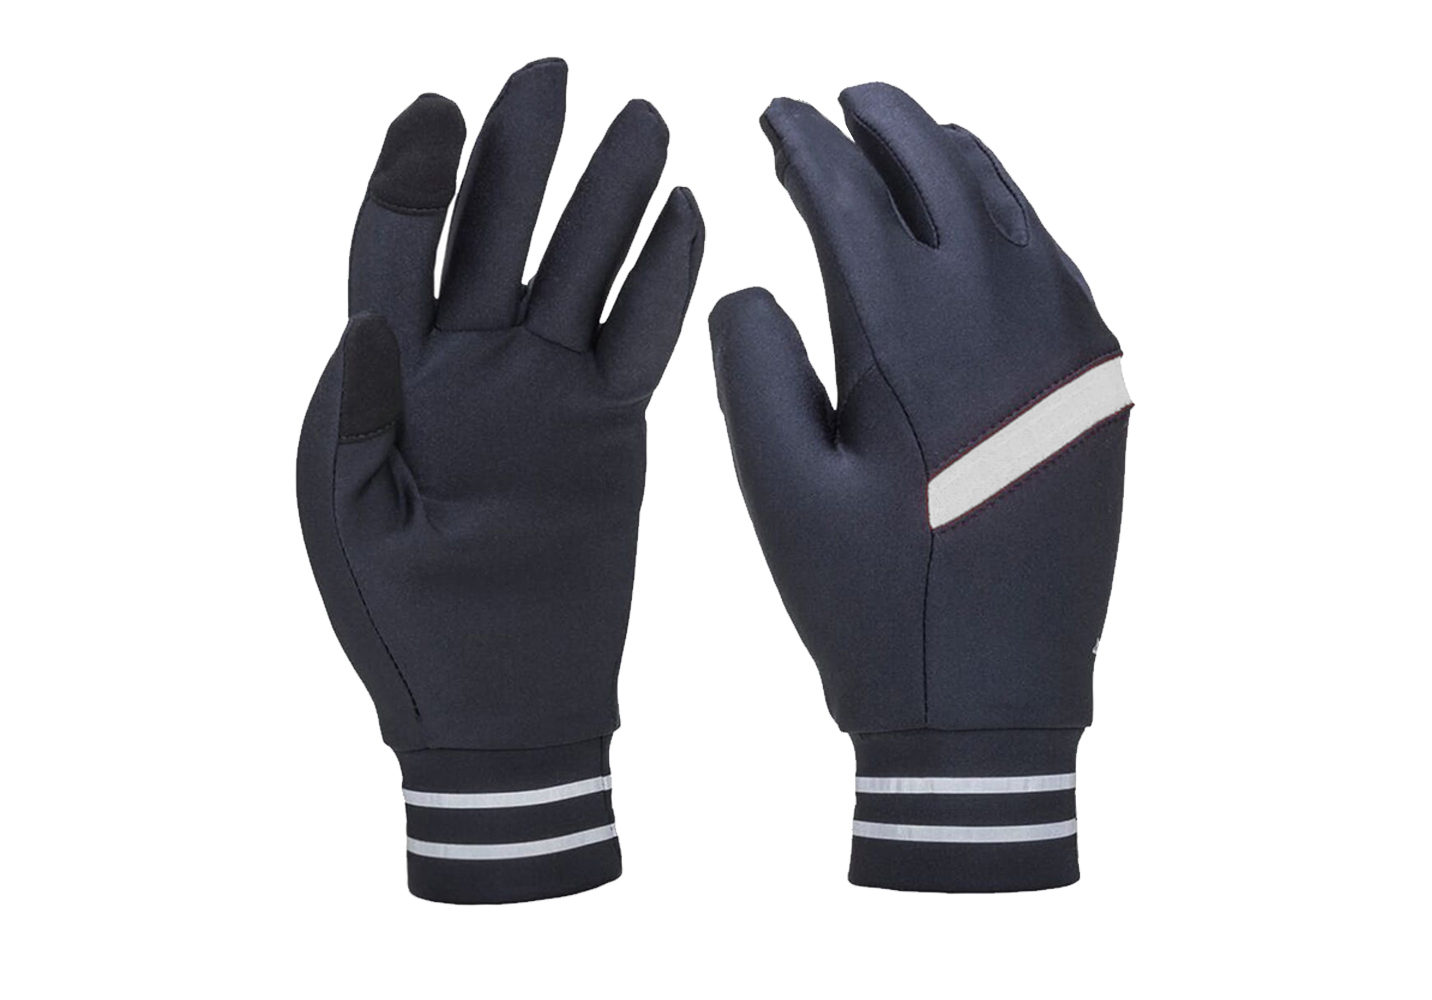 High Stretch Reflective Glove/IWG-023